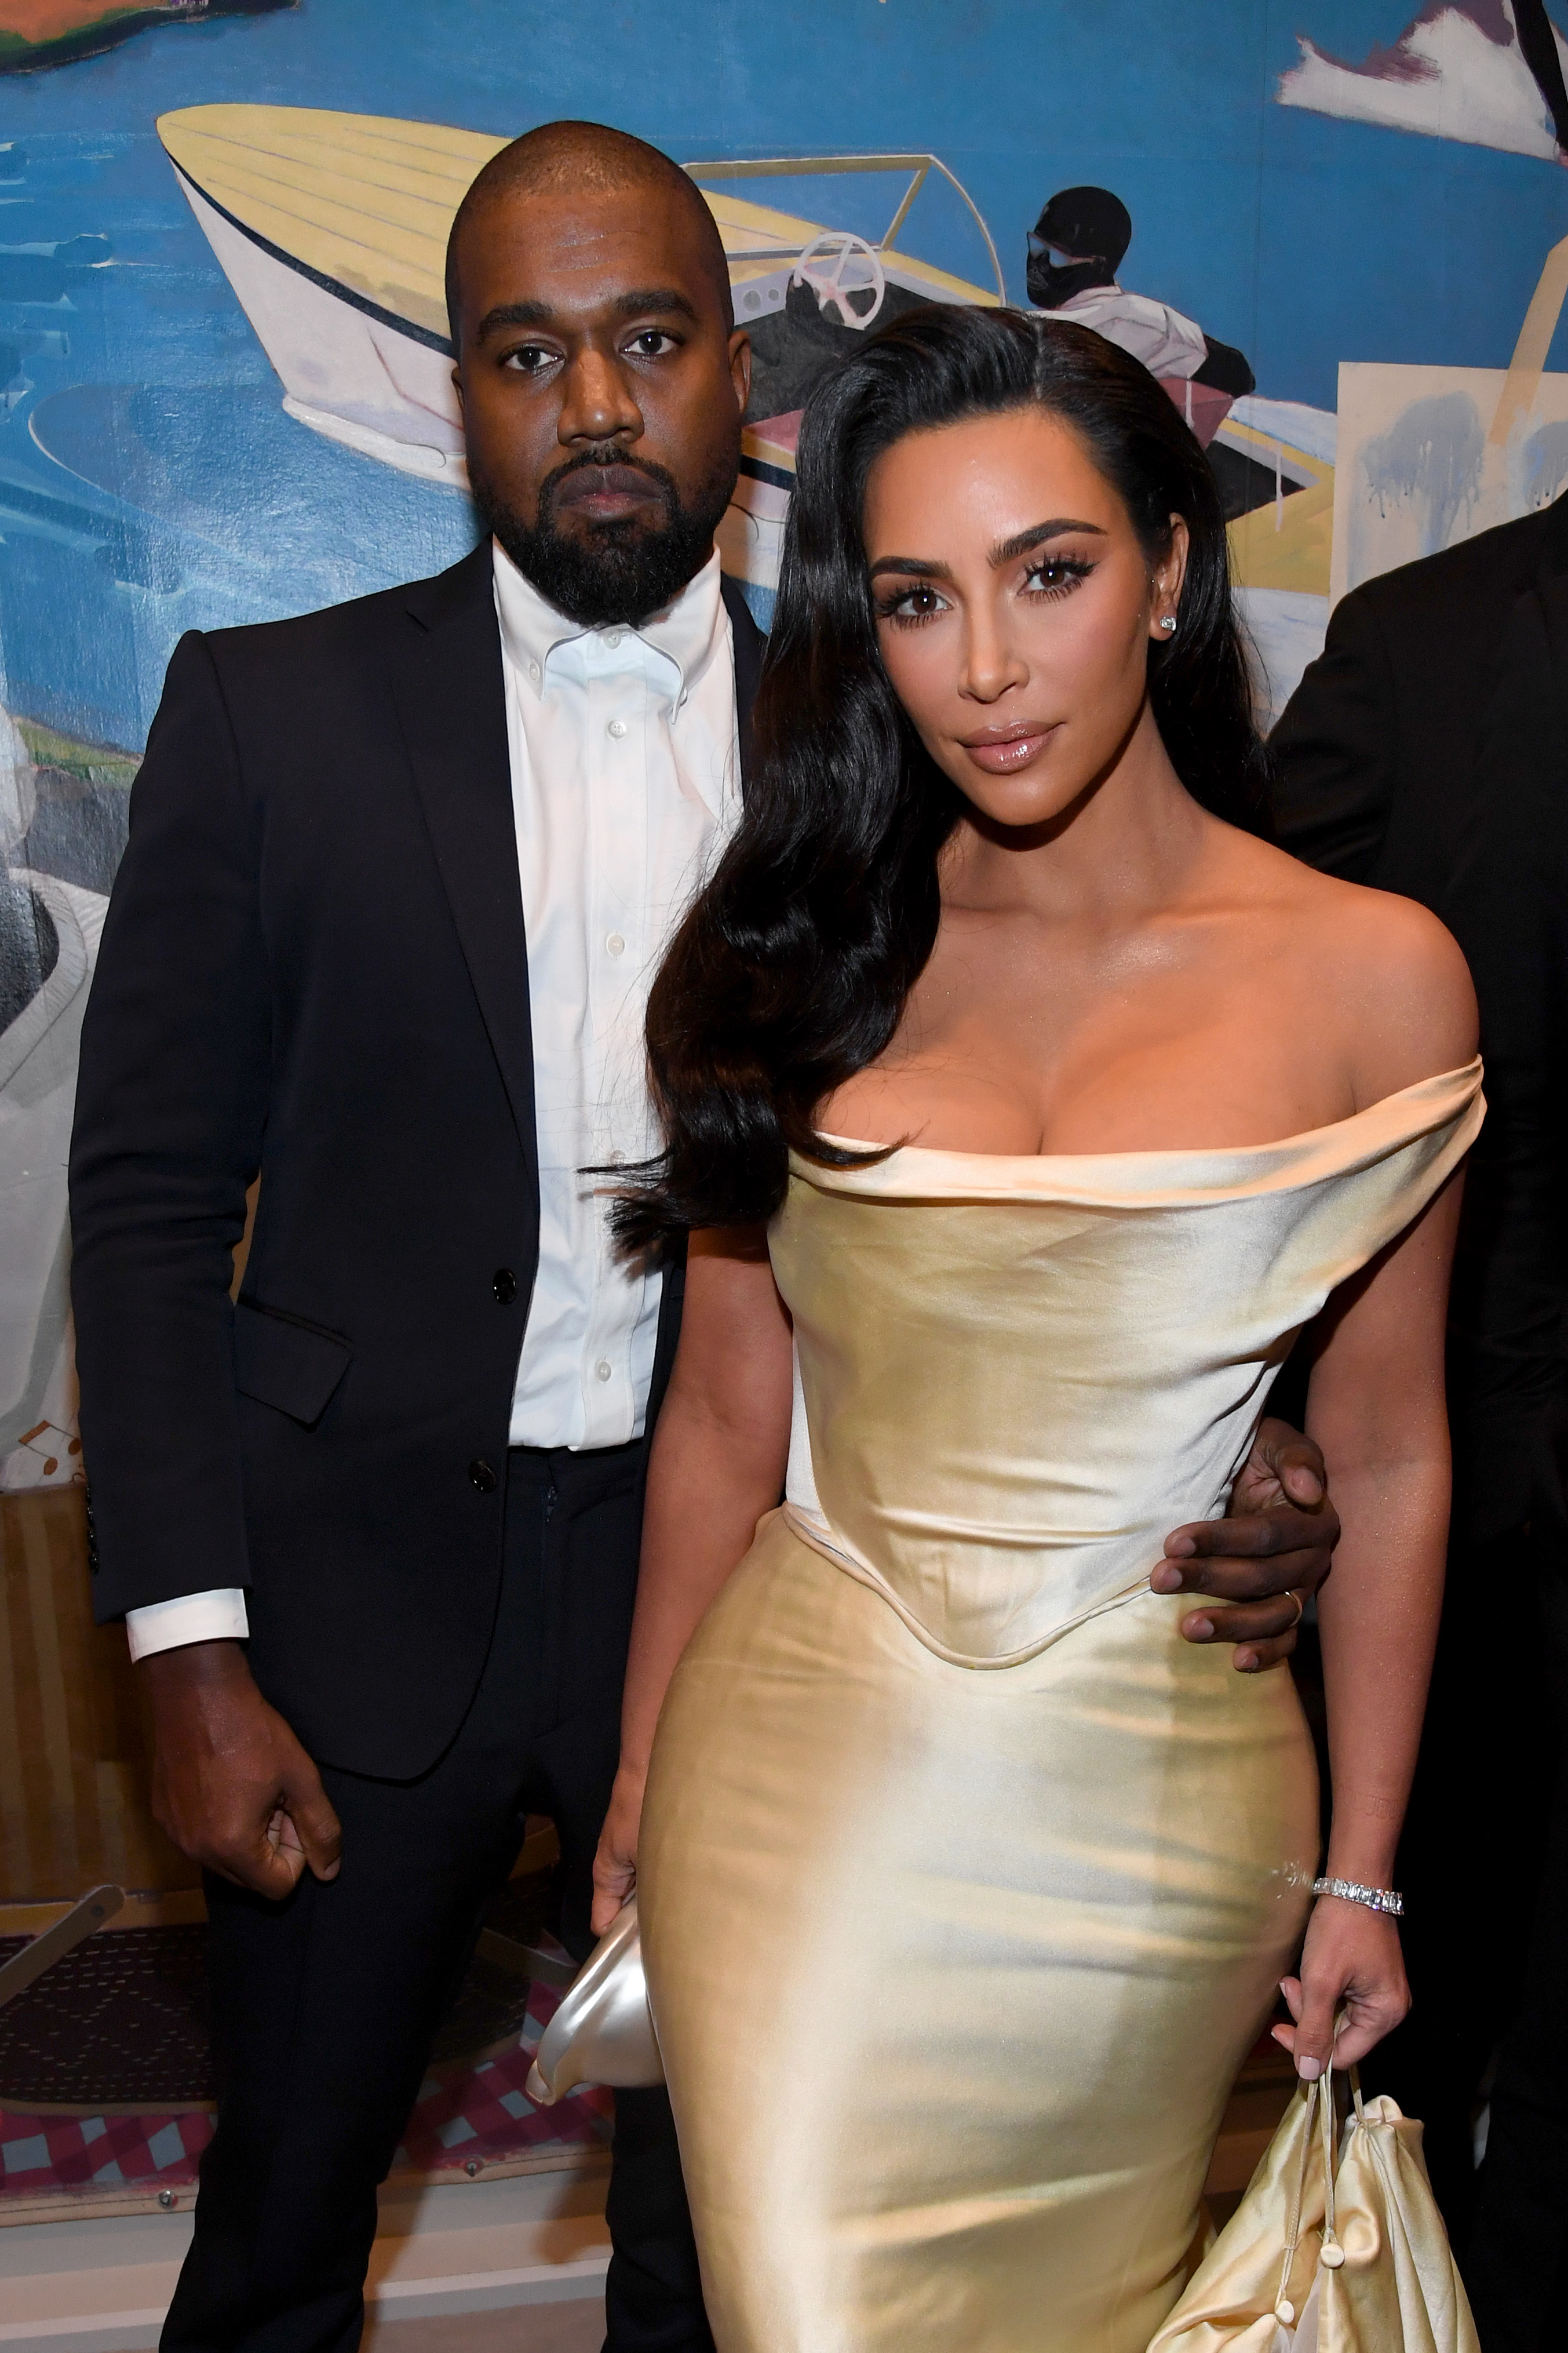 Kanye West and Kim Kardashian West's marriage has been reportedly on the rocks since January this year.